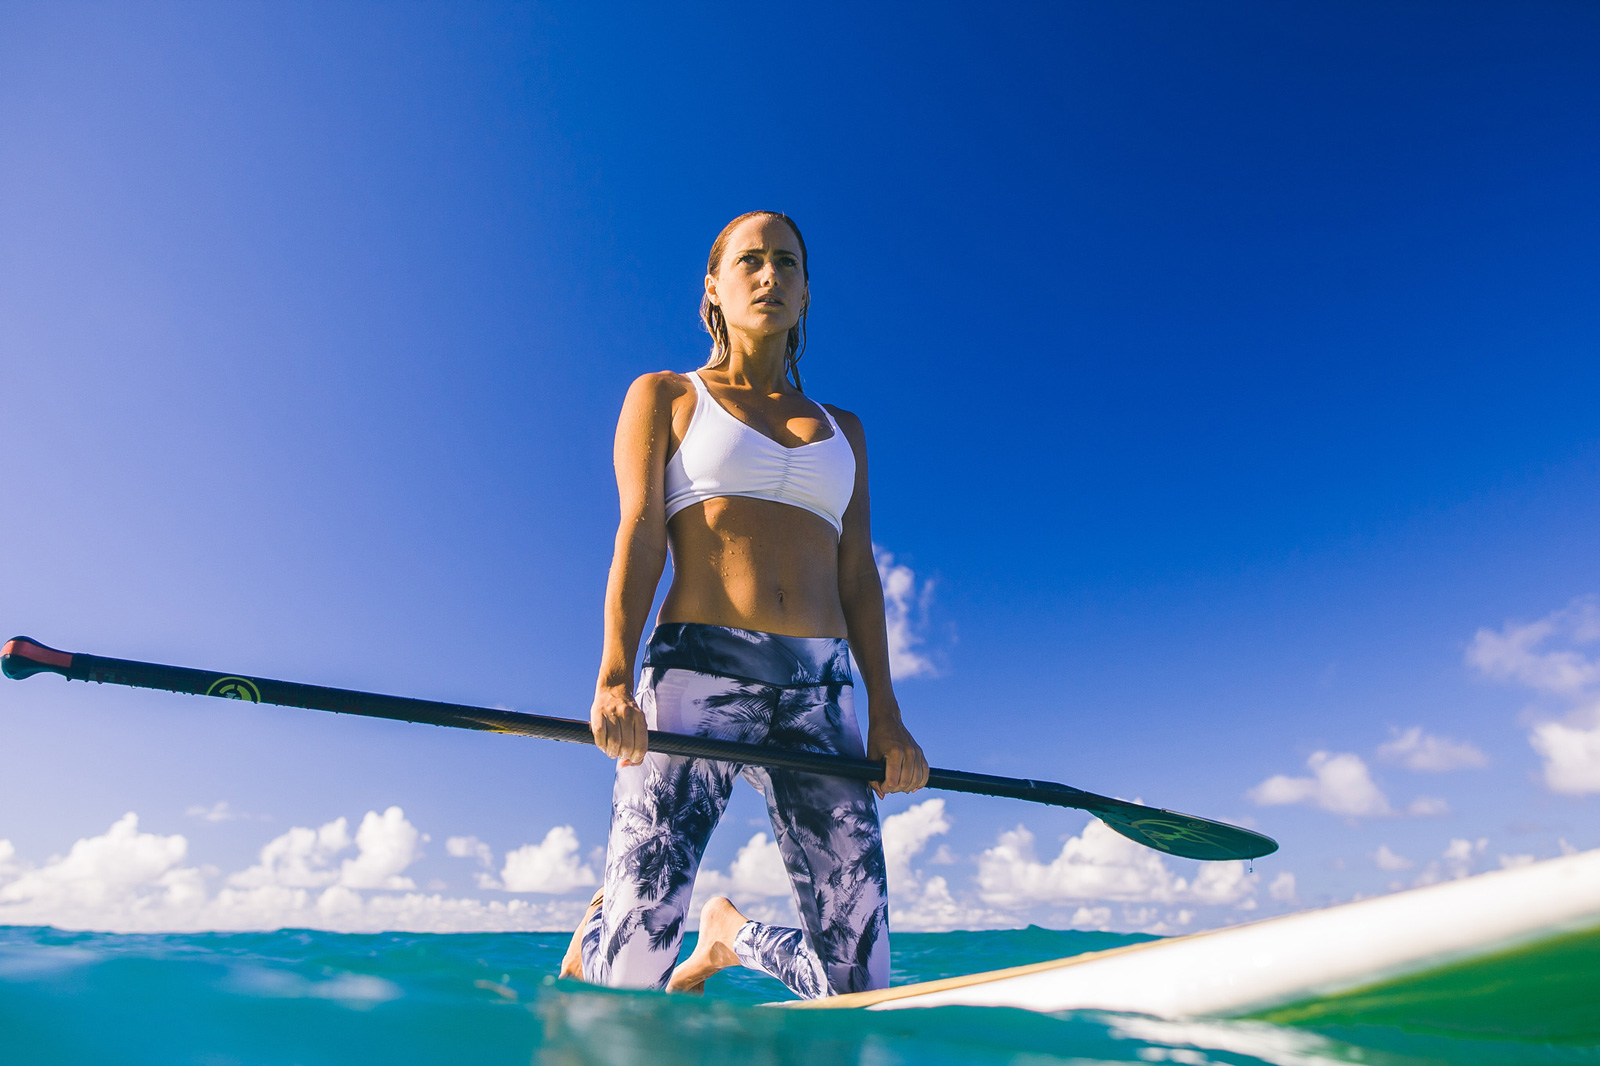 5 reasons to wear a legging for kiting - KiteSista